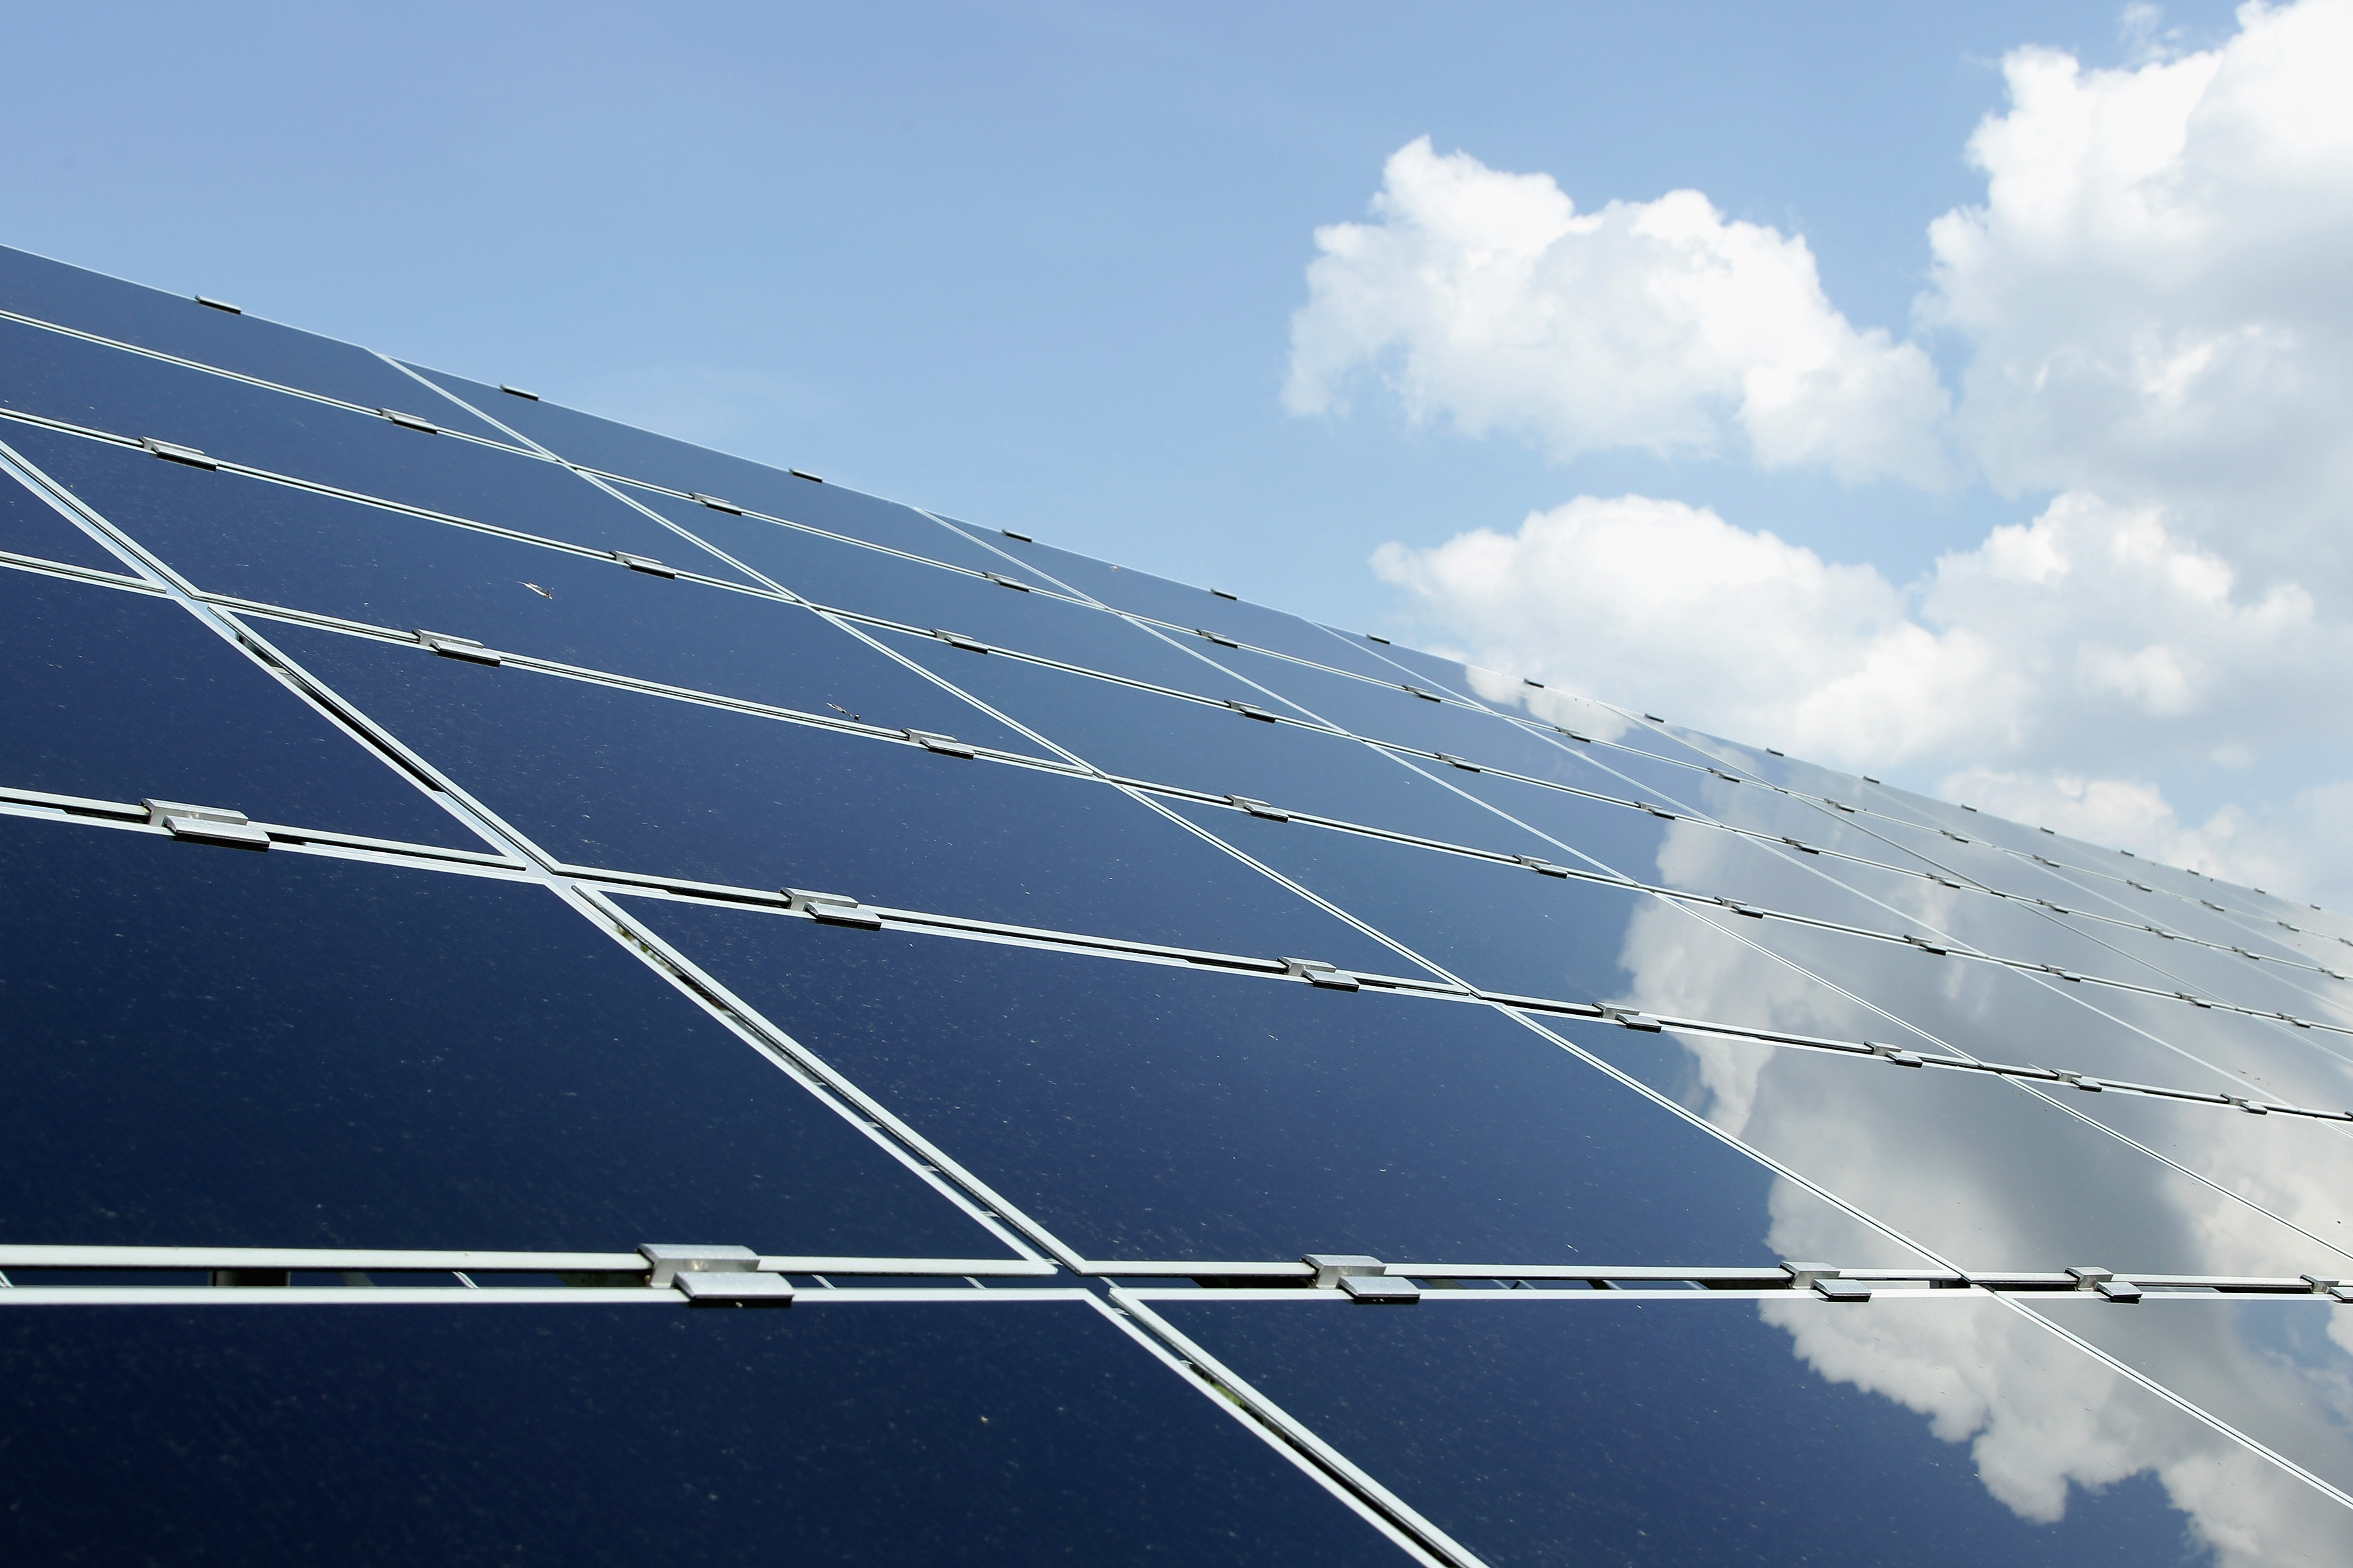 The World Will Reach One Trillion Watts of Solar Power in the Next Five Years